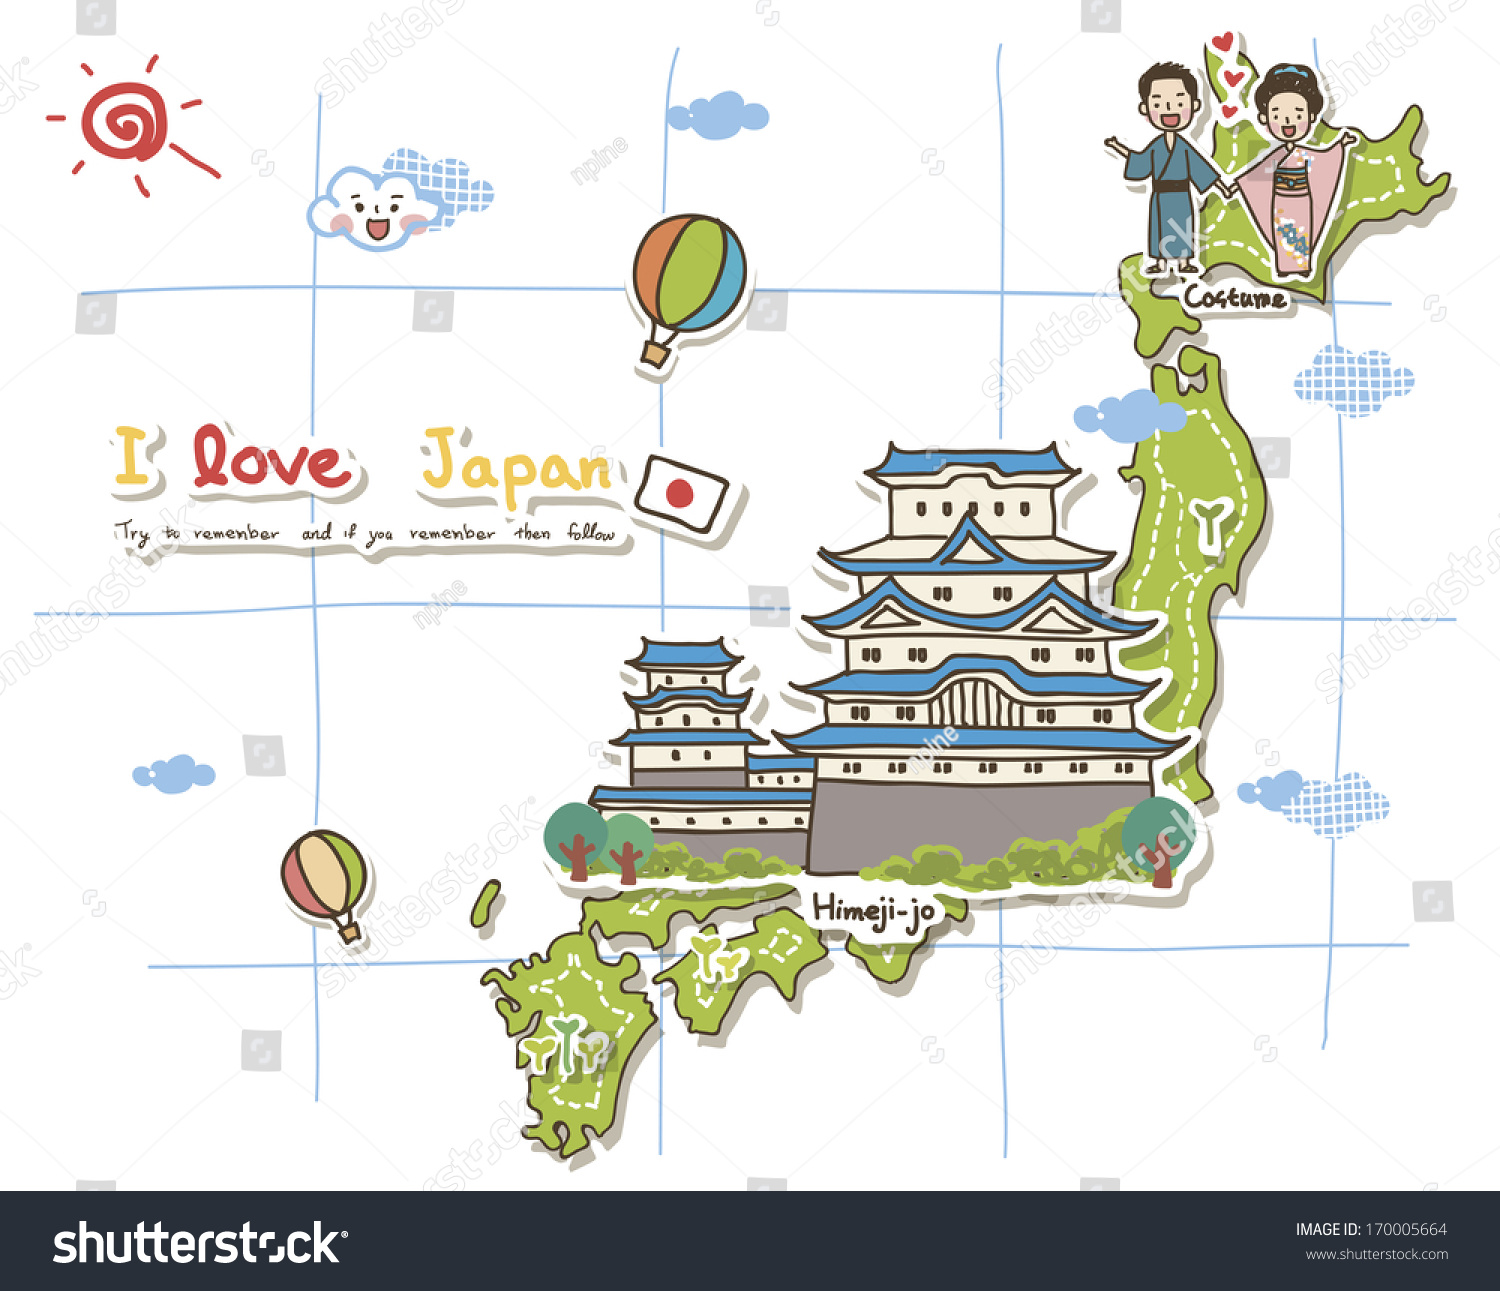 Map Depicting Tourist Attractions Japan Illustration – Tourist Map Of Japan English